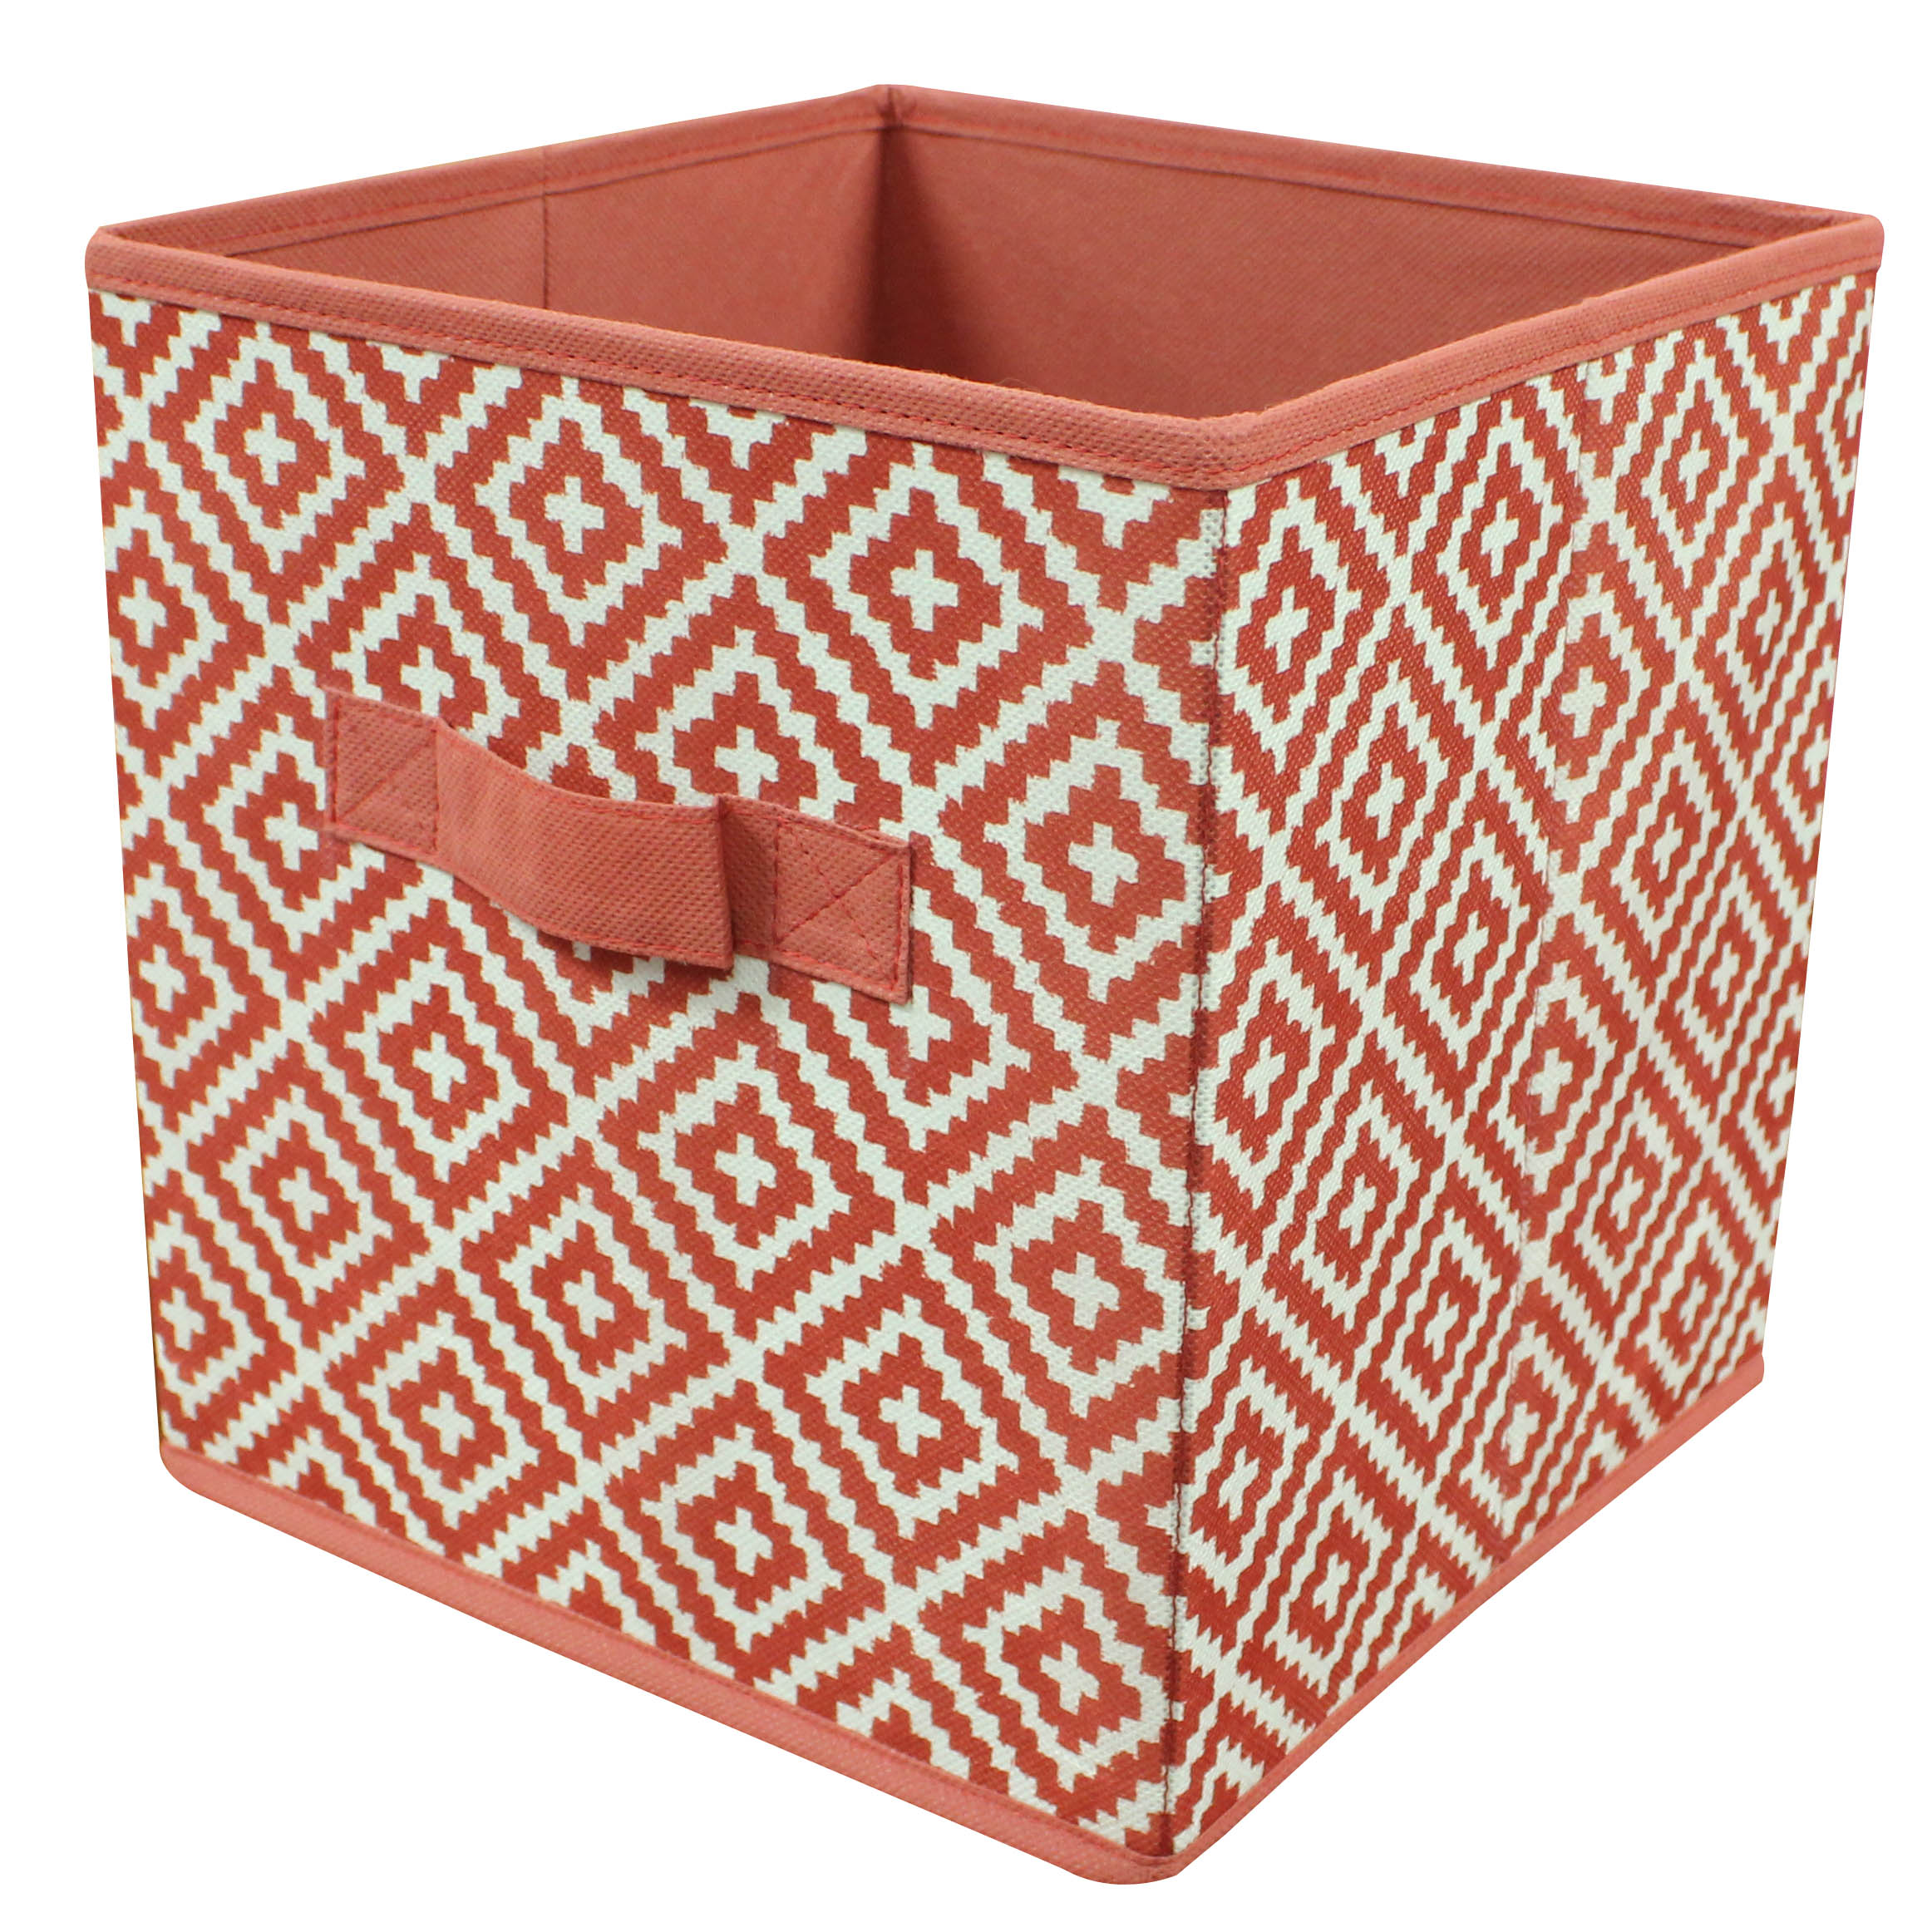 "Mainstays collapsible 10.5"" x 10.5"" cube storage bins, Single, Diamond Clay Brick"